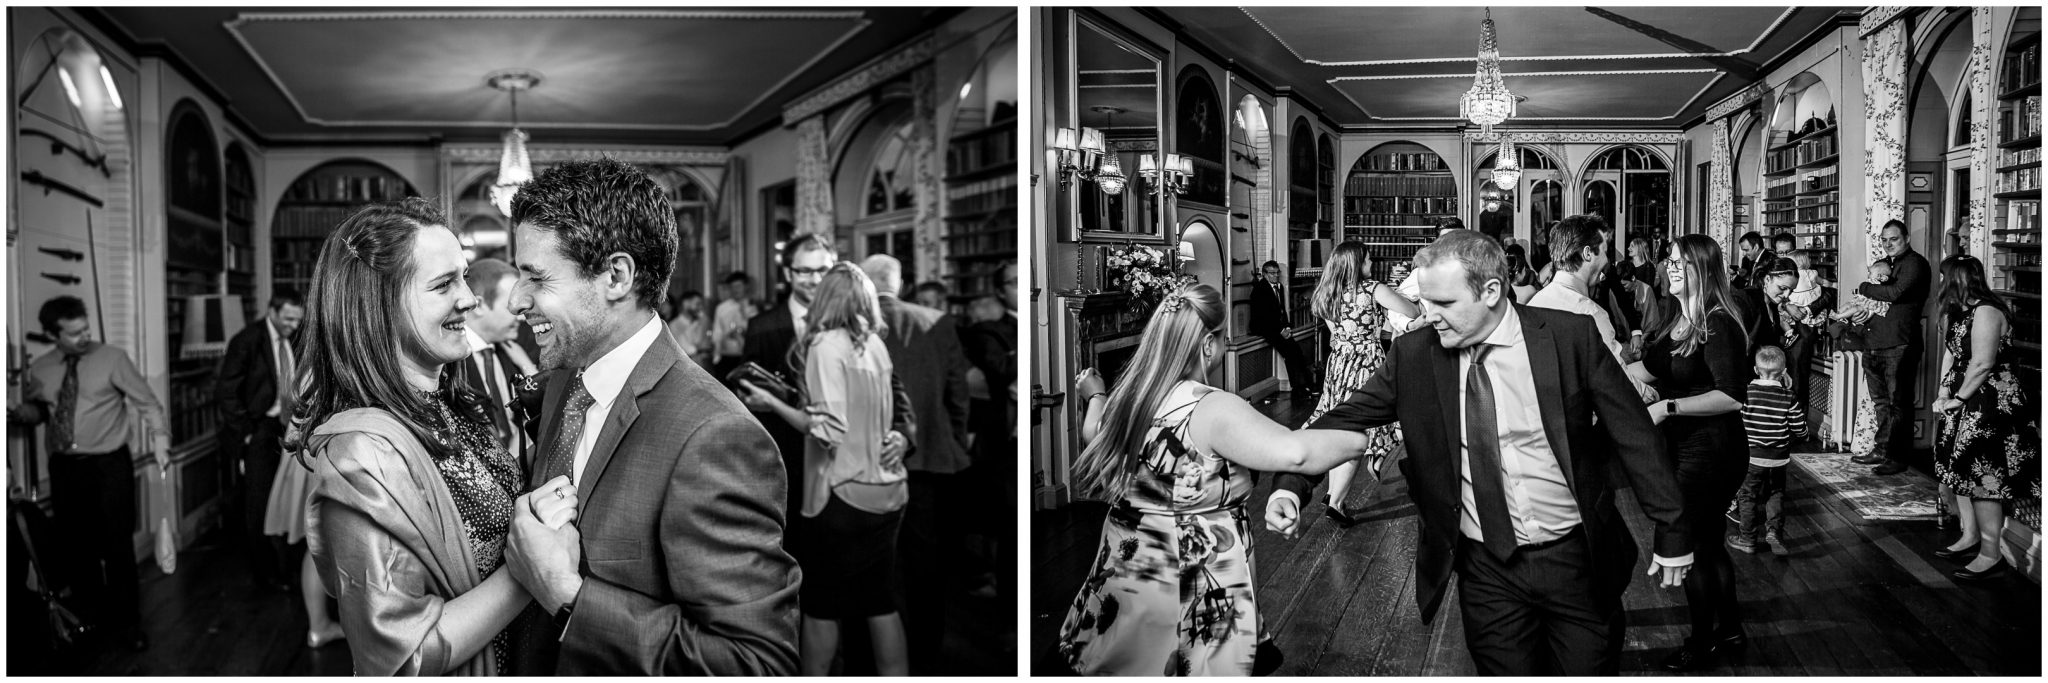 Avington Park wedding photography black and white guests dancing